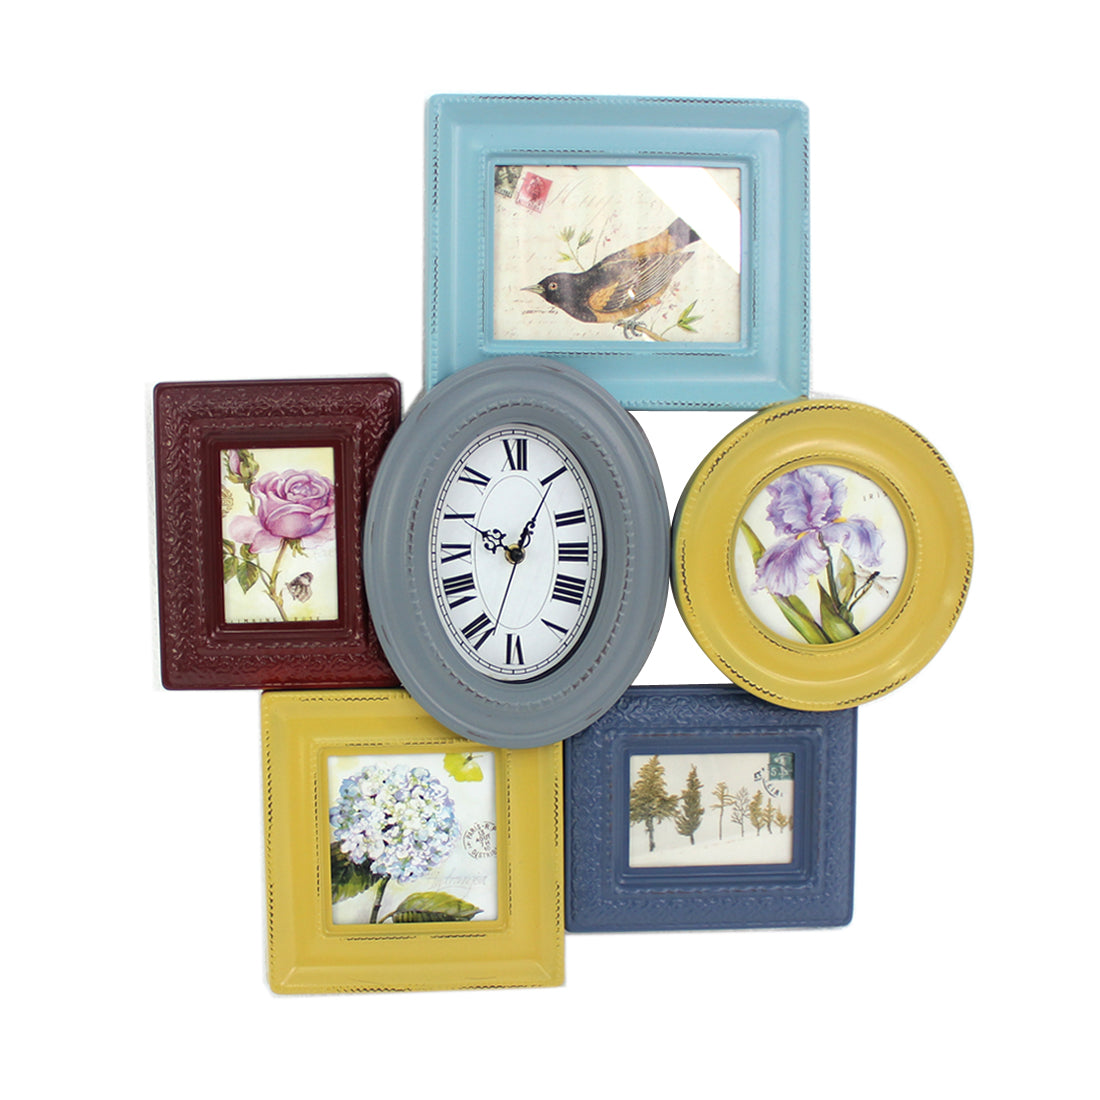 "1.77"" x 21.65"" x 23.43"" Multi-Color, Vintage Wood, Photo Frame & Clock - Wall Decor"